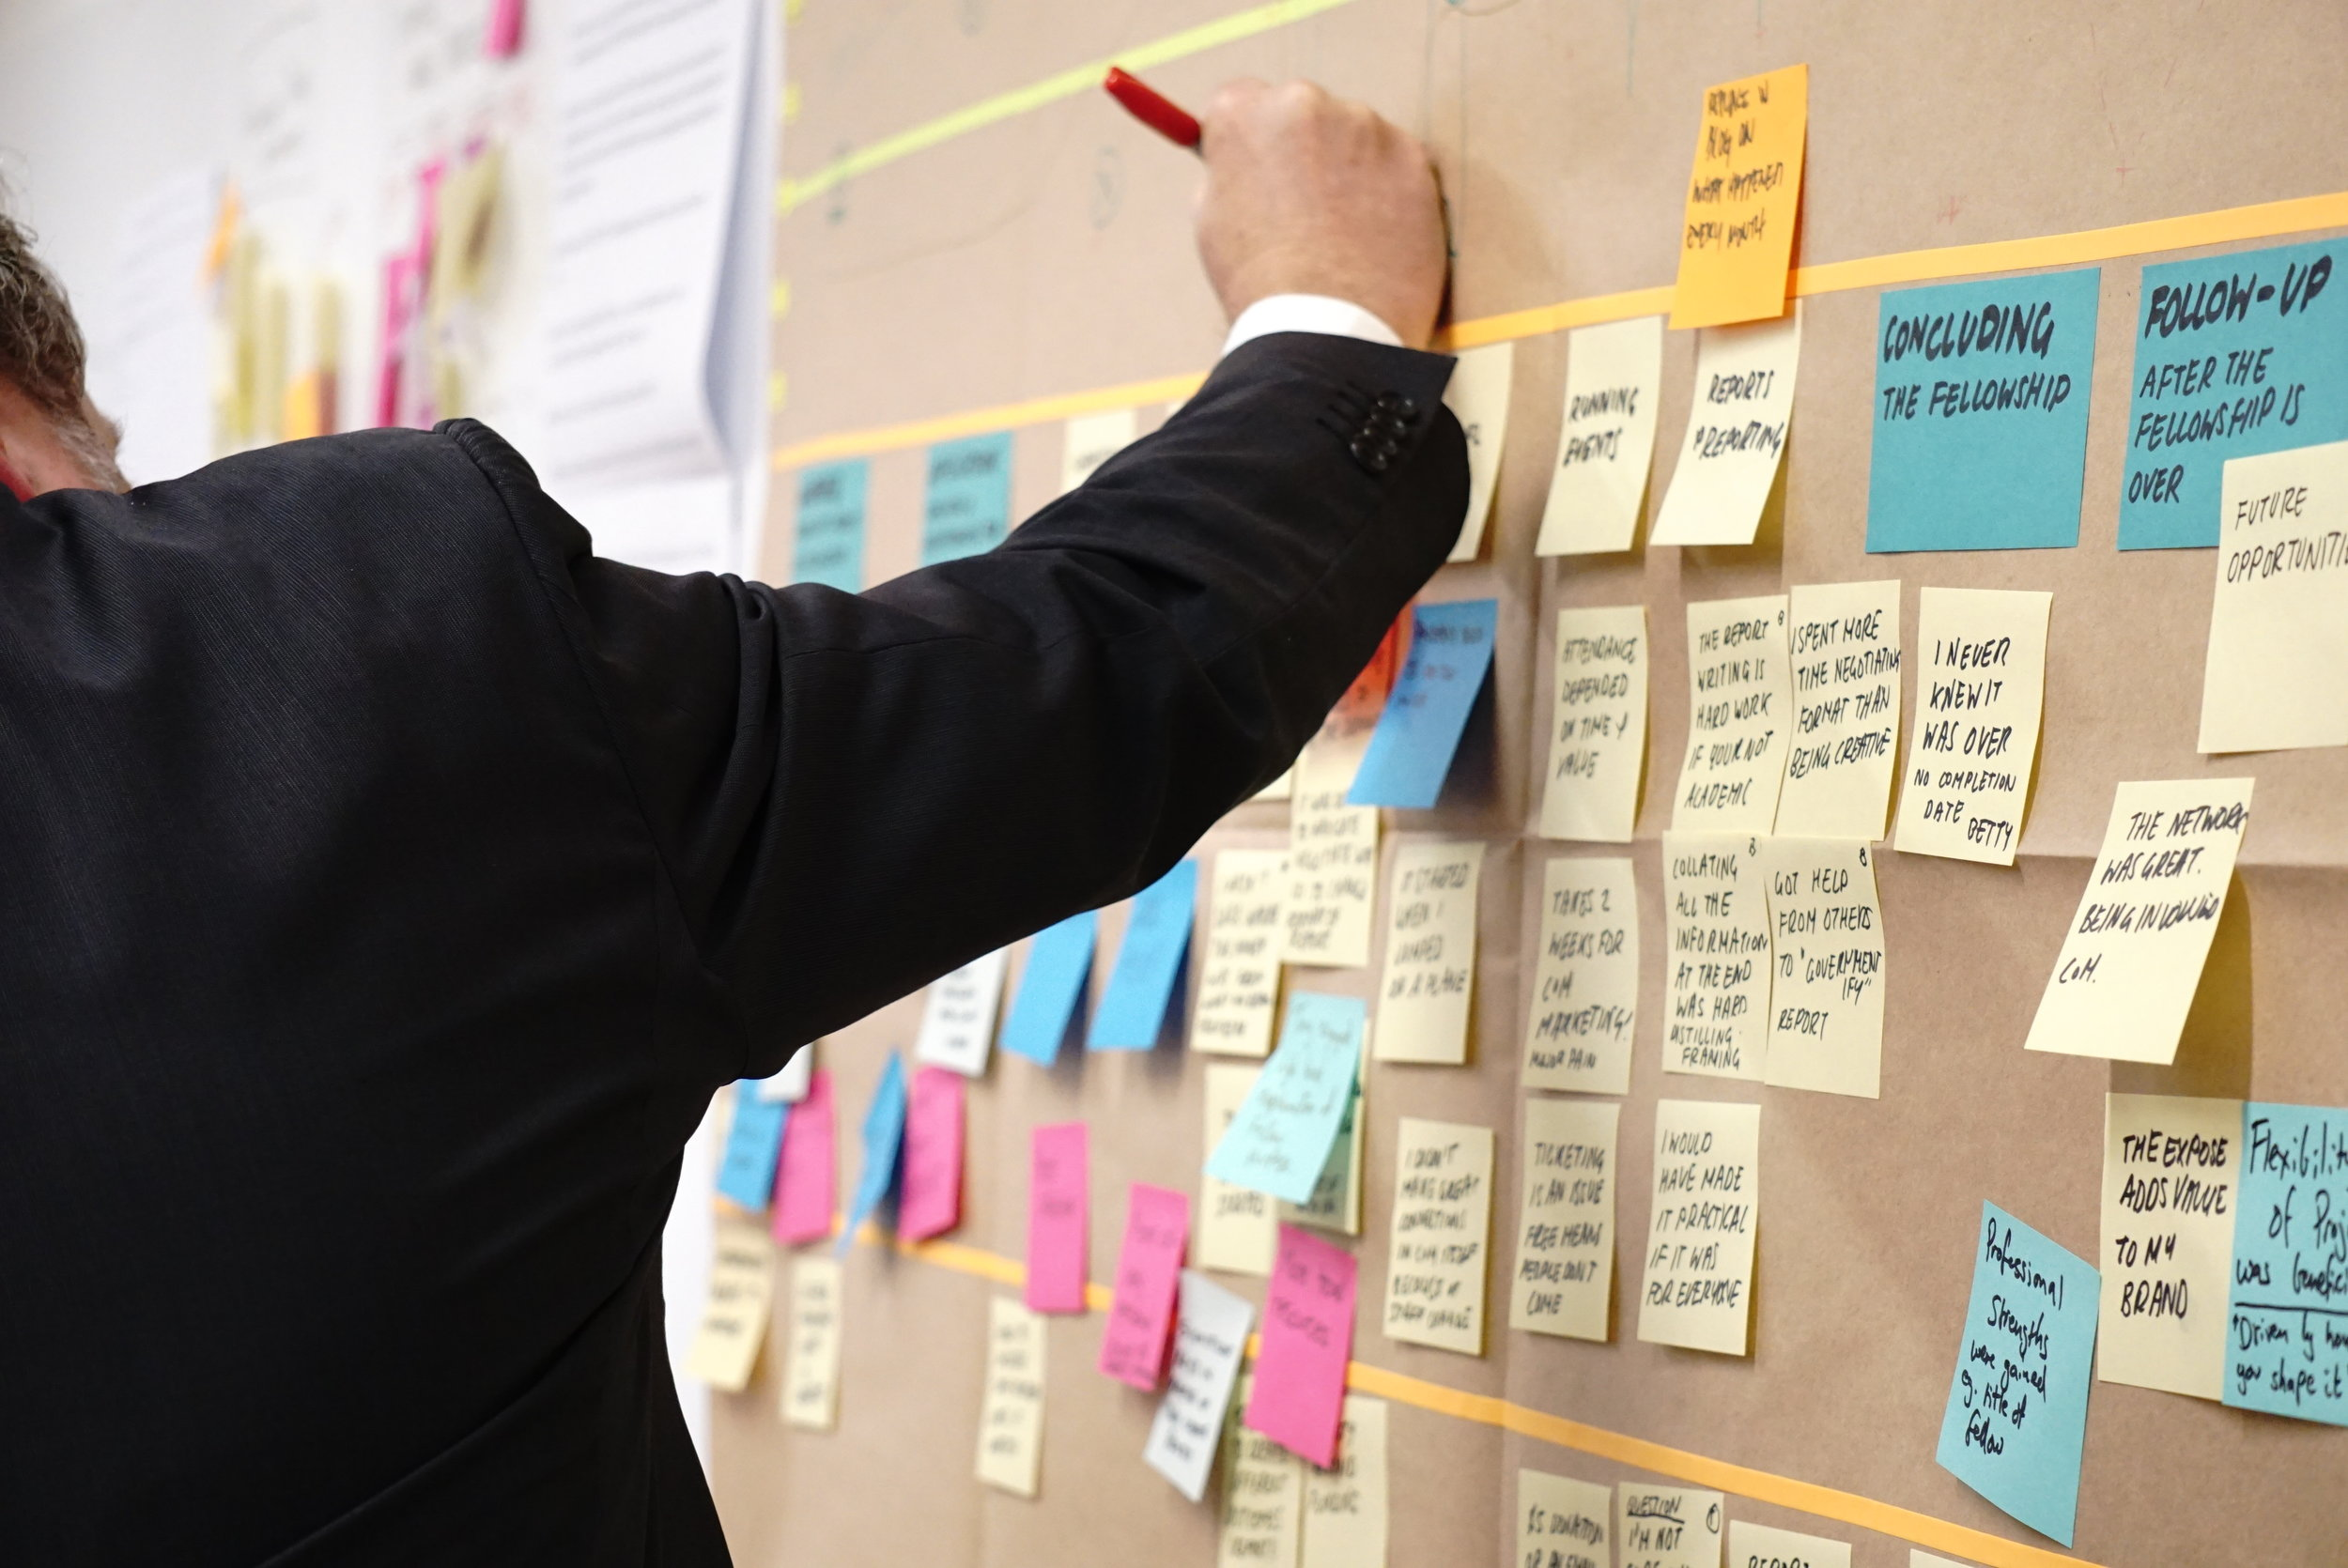 Why Projects Fail (and how to avoid it) - Using my own experience and some high profile successes and failures, I look at why projects typically fail and how to avoid those traps. I talk about over-optimistic forecasting, scope creep, management control, change management, communication and stakeholder management.Optional Exercise: I work with groups to define a project and then look at how it might succeed or fail.